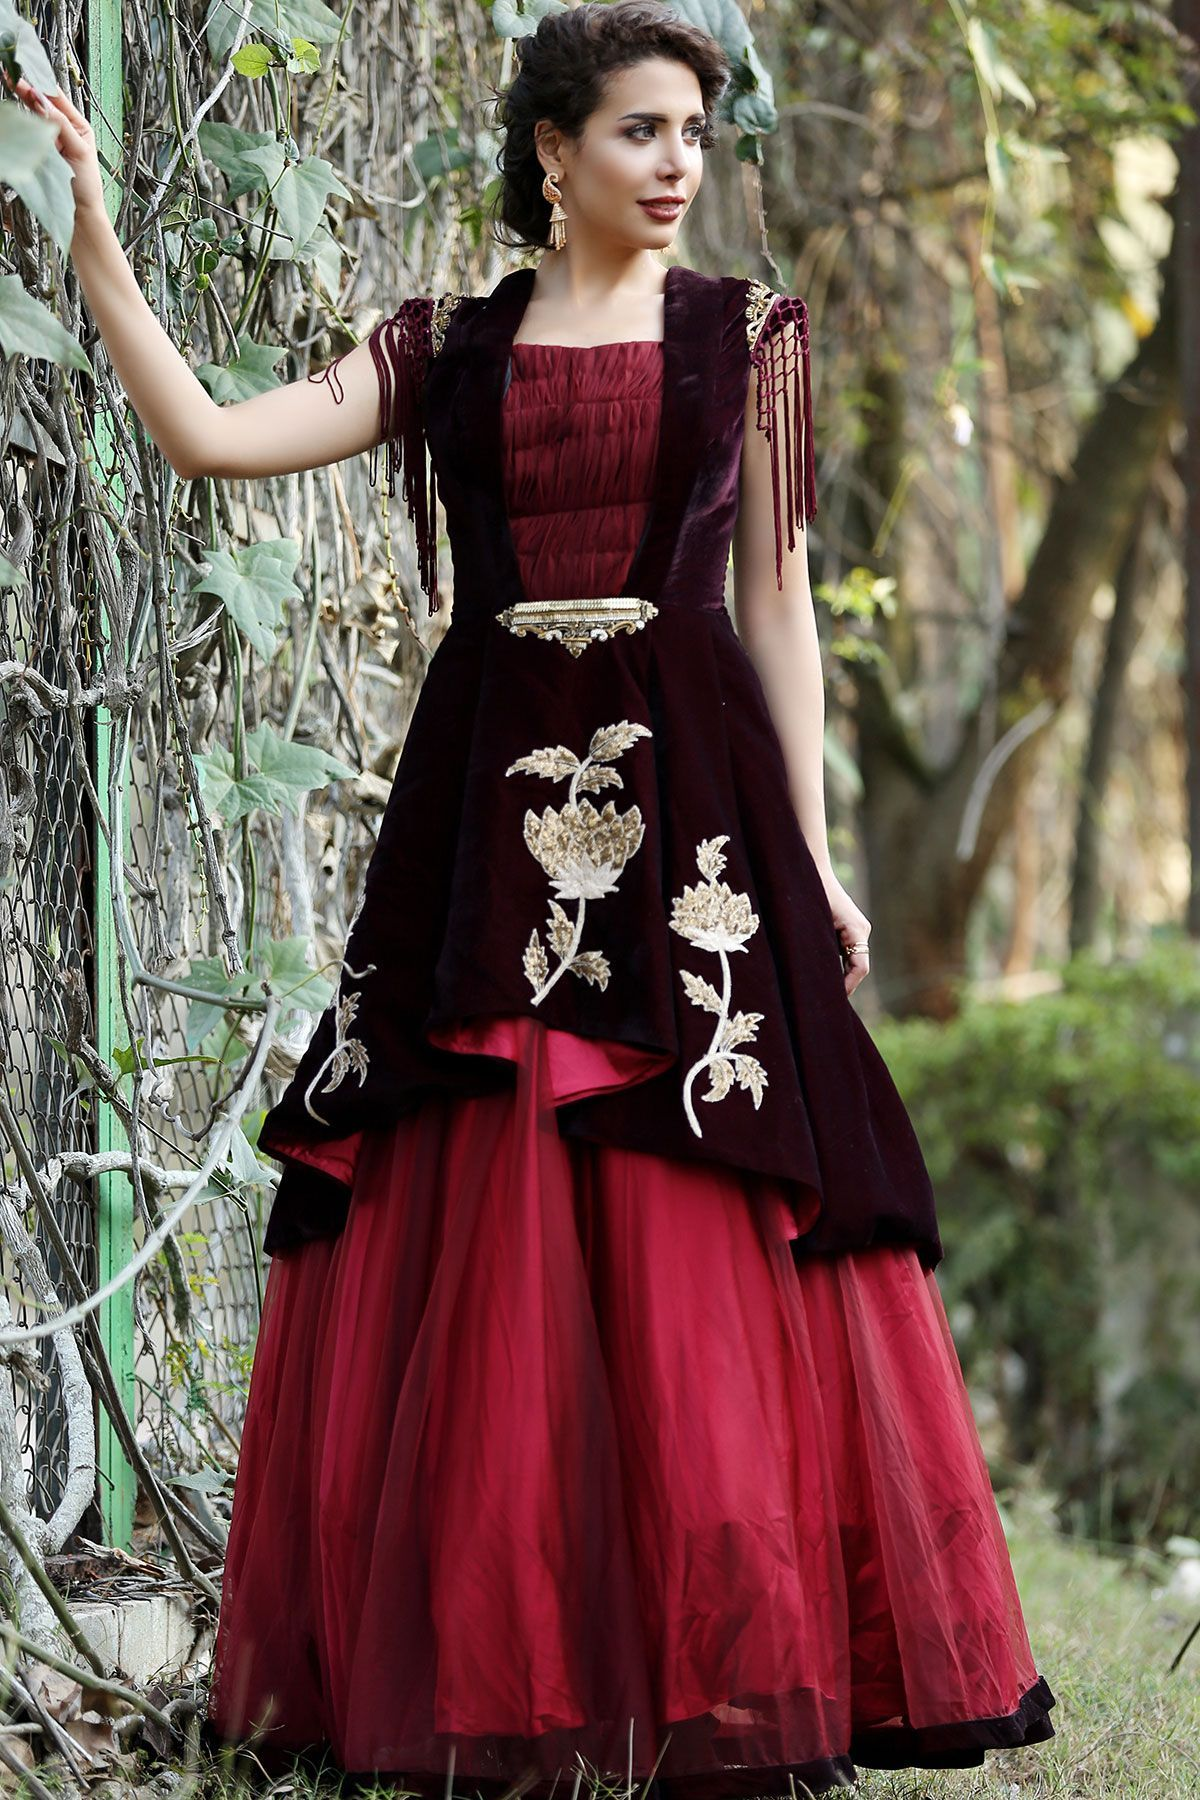 c0d1cc953 Buy Maroon Velvet Zardosi Embroidered Evening Gown Online | Dress ...